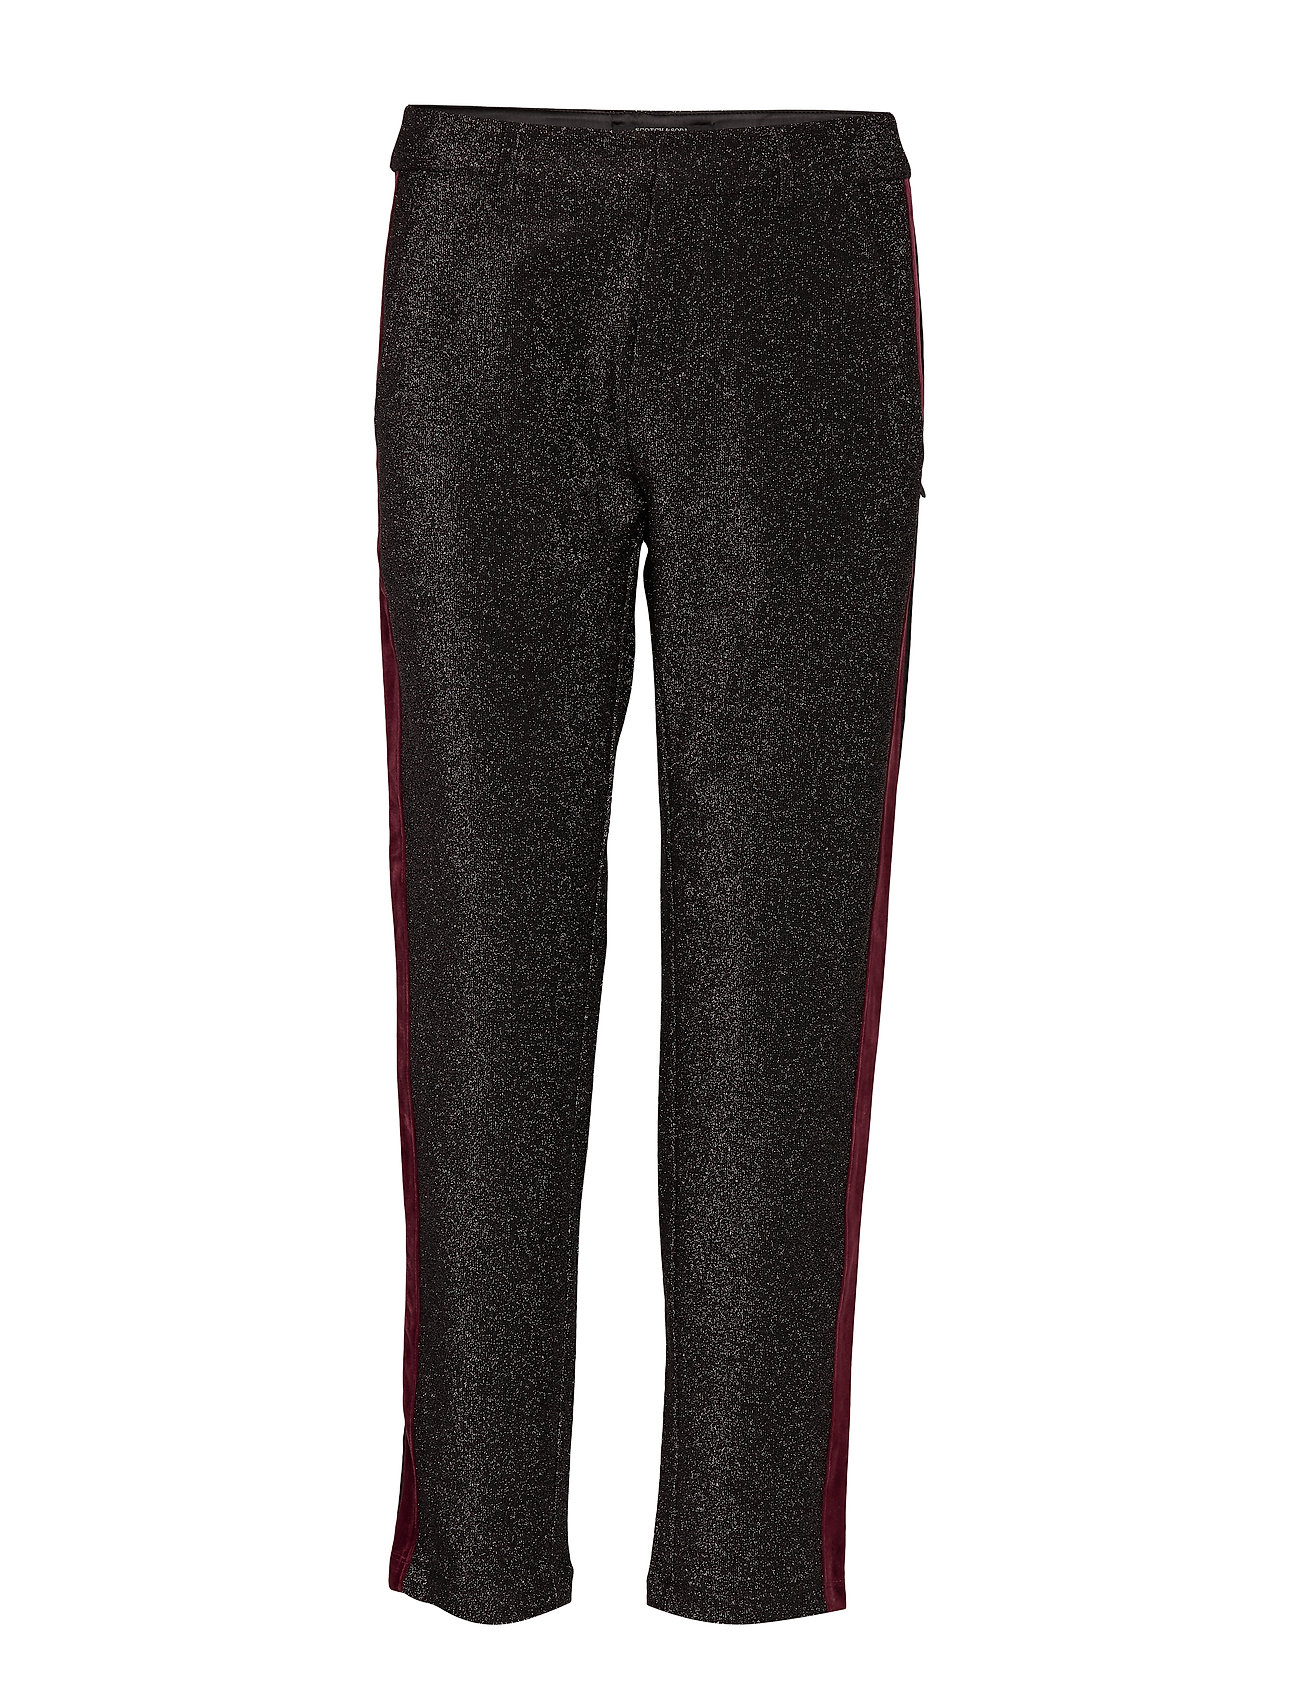 Scotch & Soda Tapered lurex pants with velvet side panel - BLACK